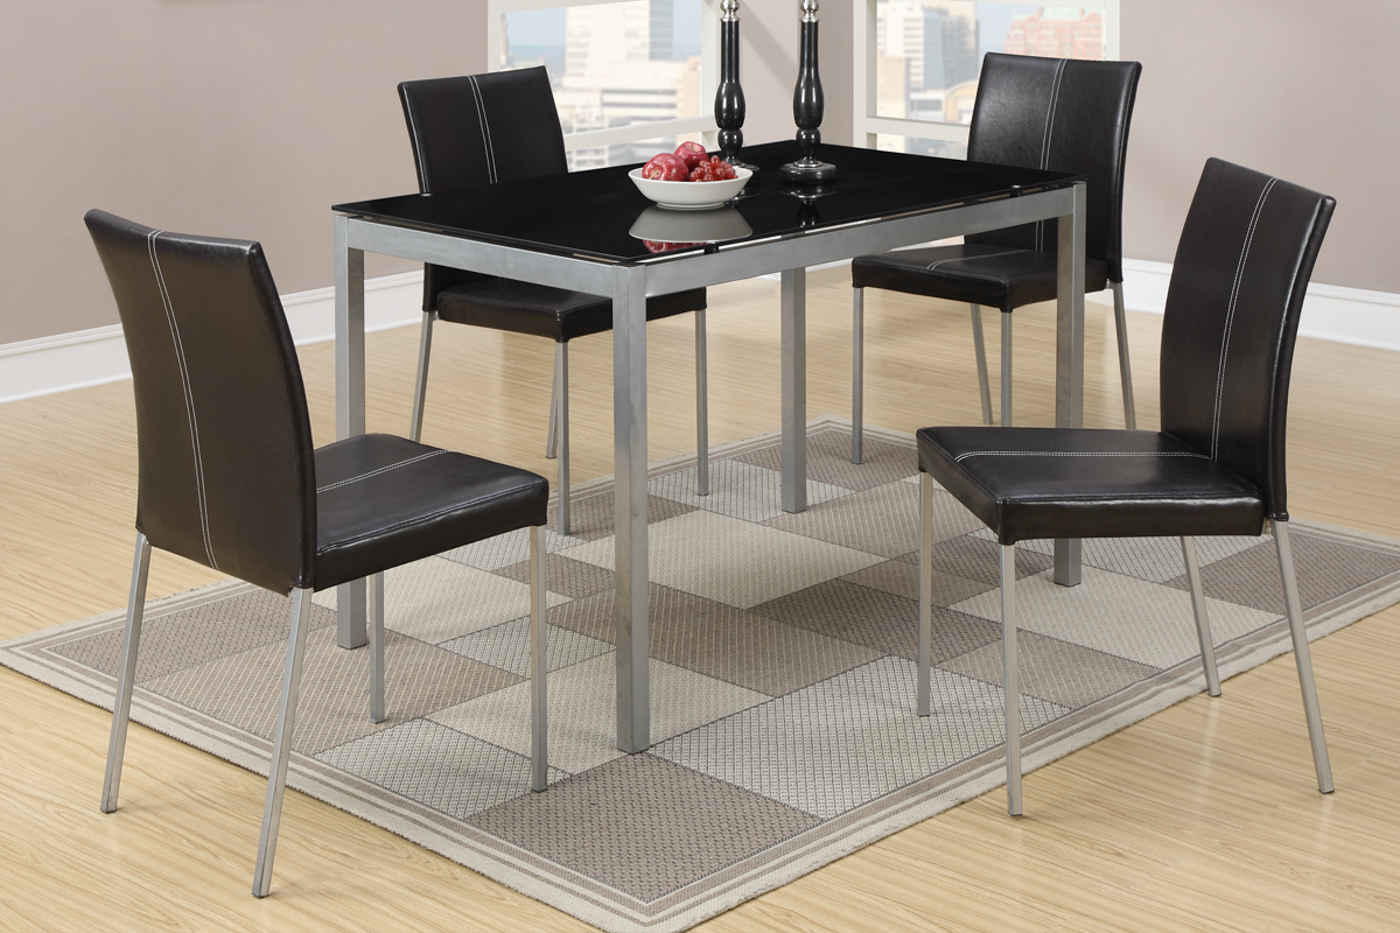 silver metal dining chairs floor rocking chair table and set steal a sofa furniture outlet los angeles ca